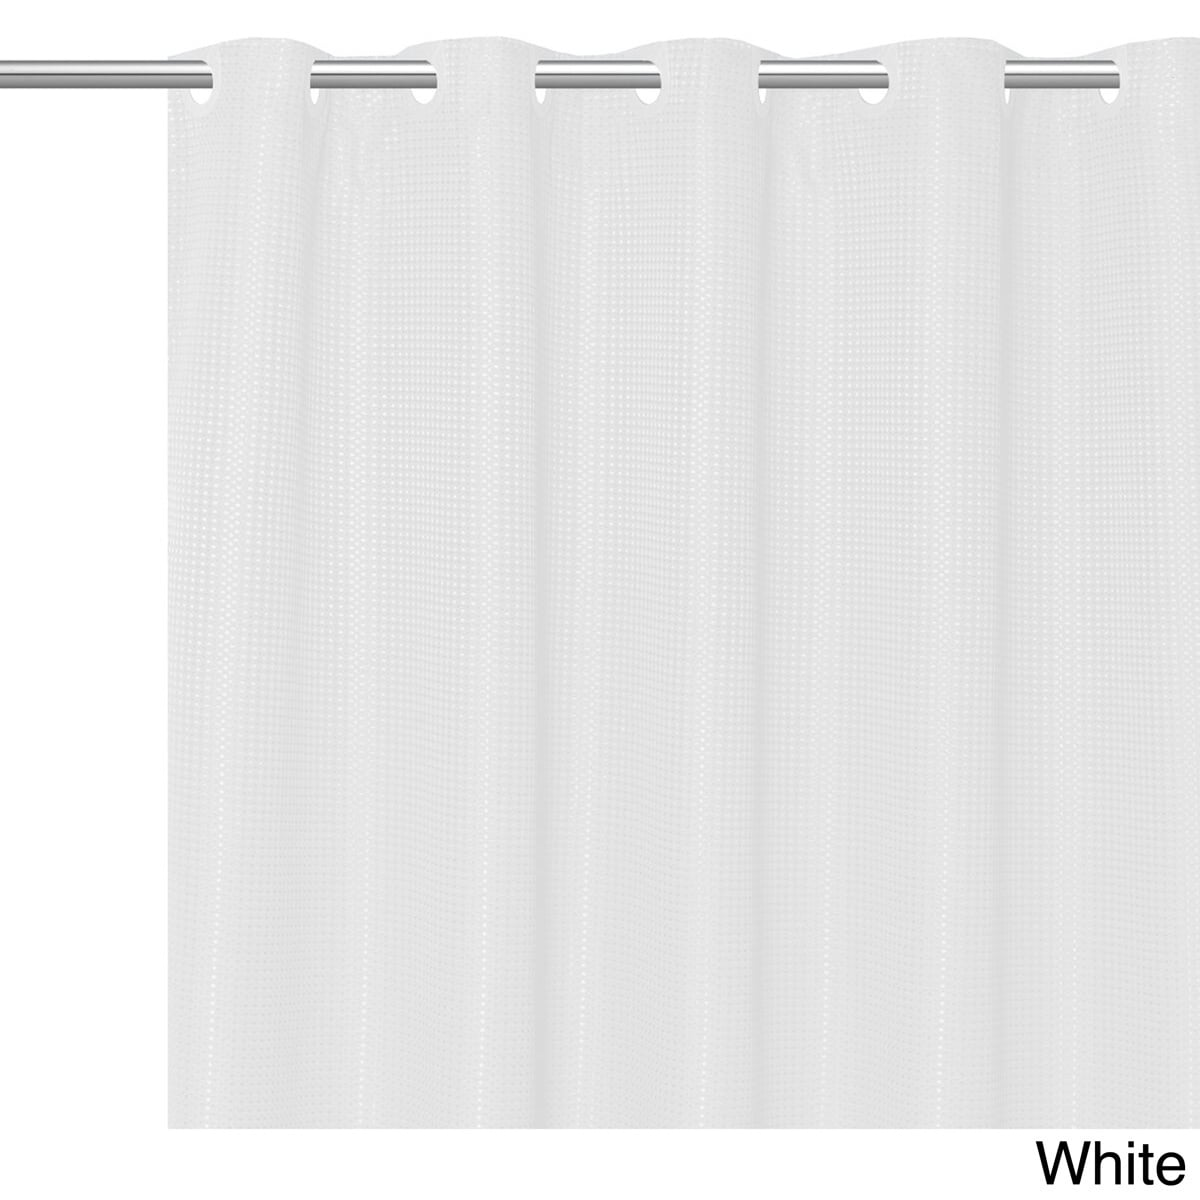 Buy White Shower Curtains Online At Overstock